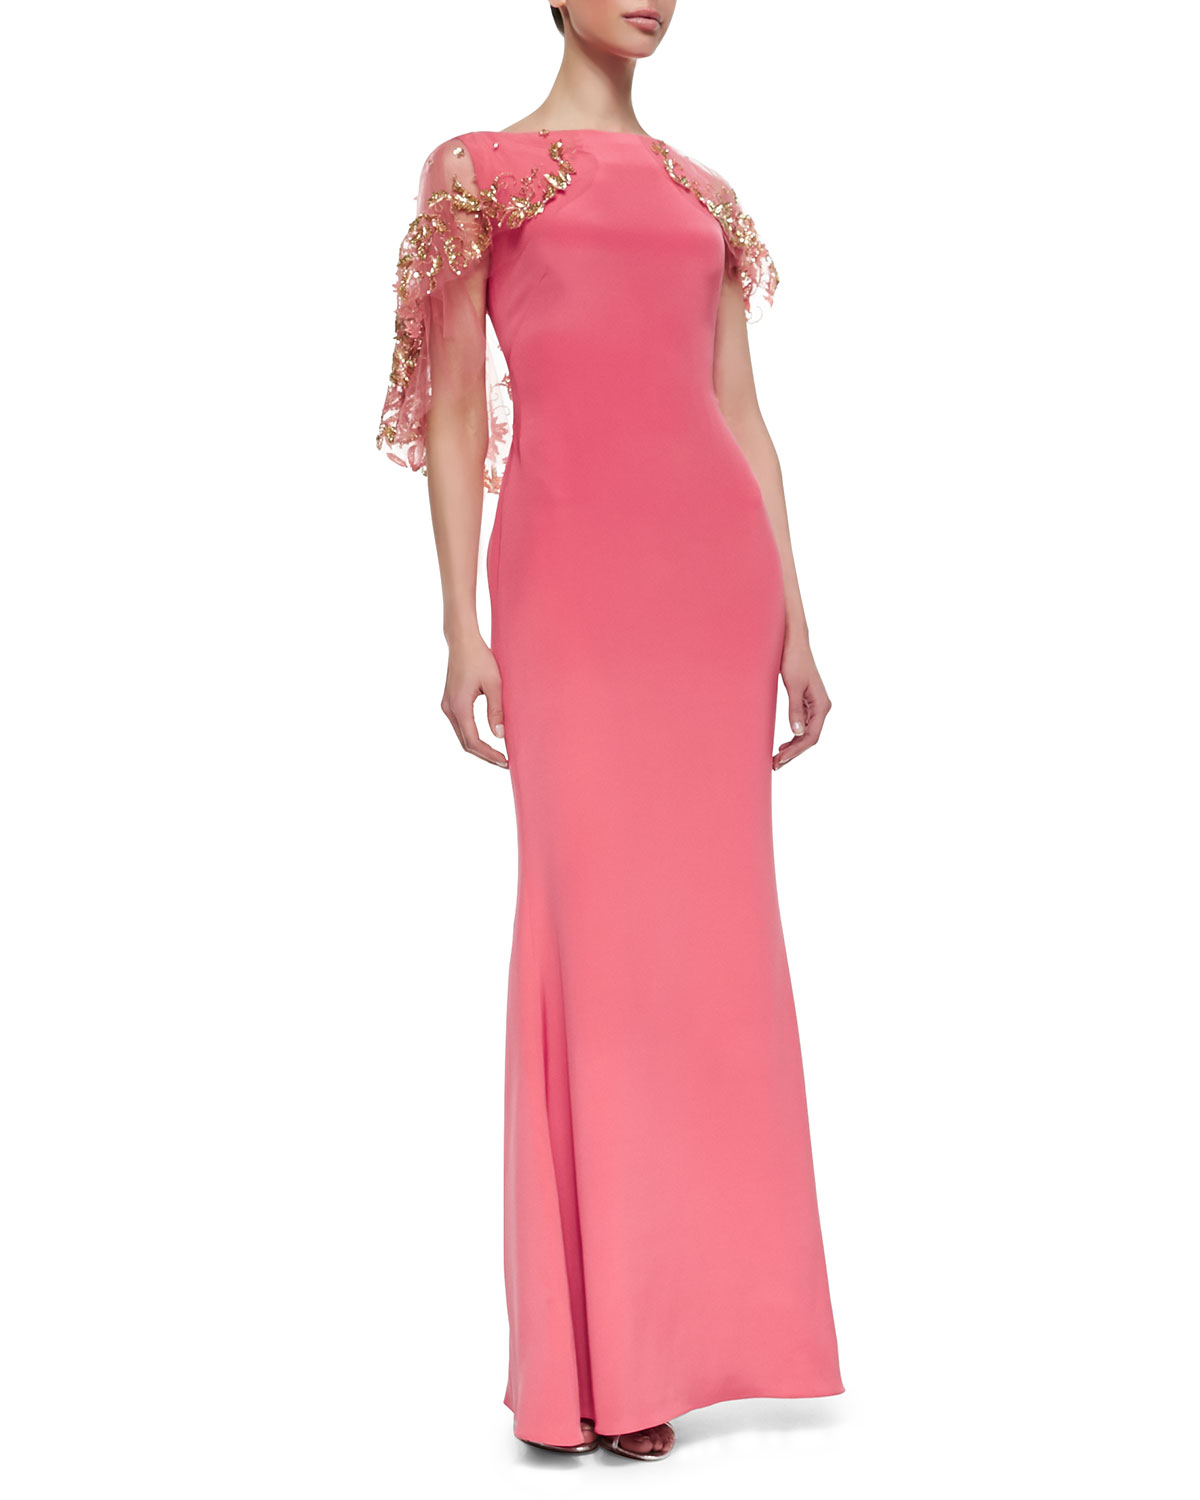 Lyst - Marchesa Embroidered Cape Gown in Pink